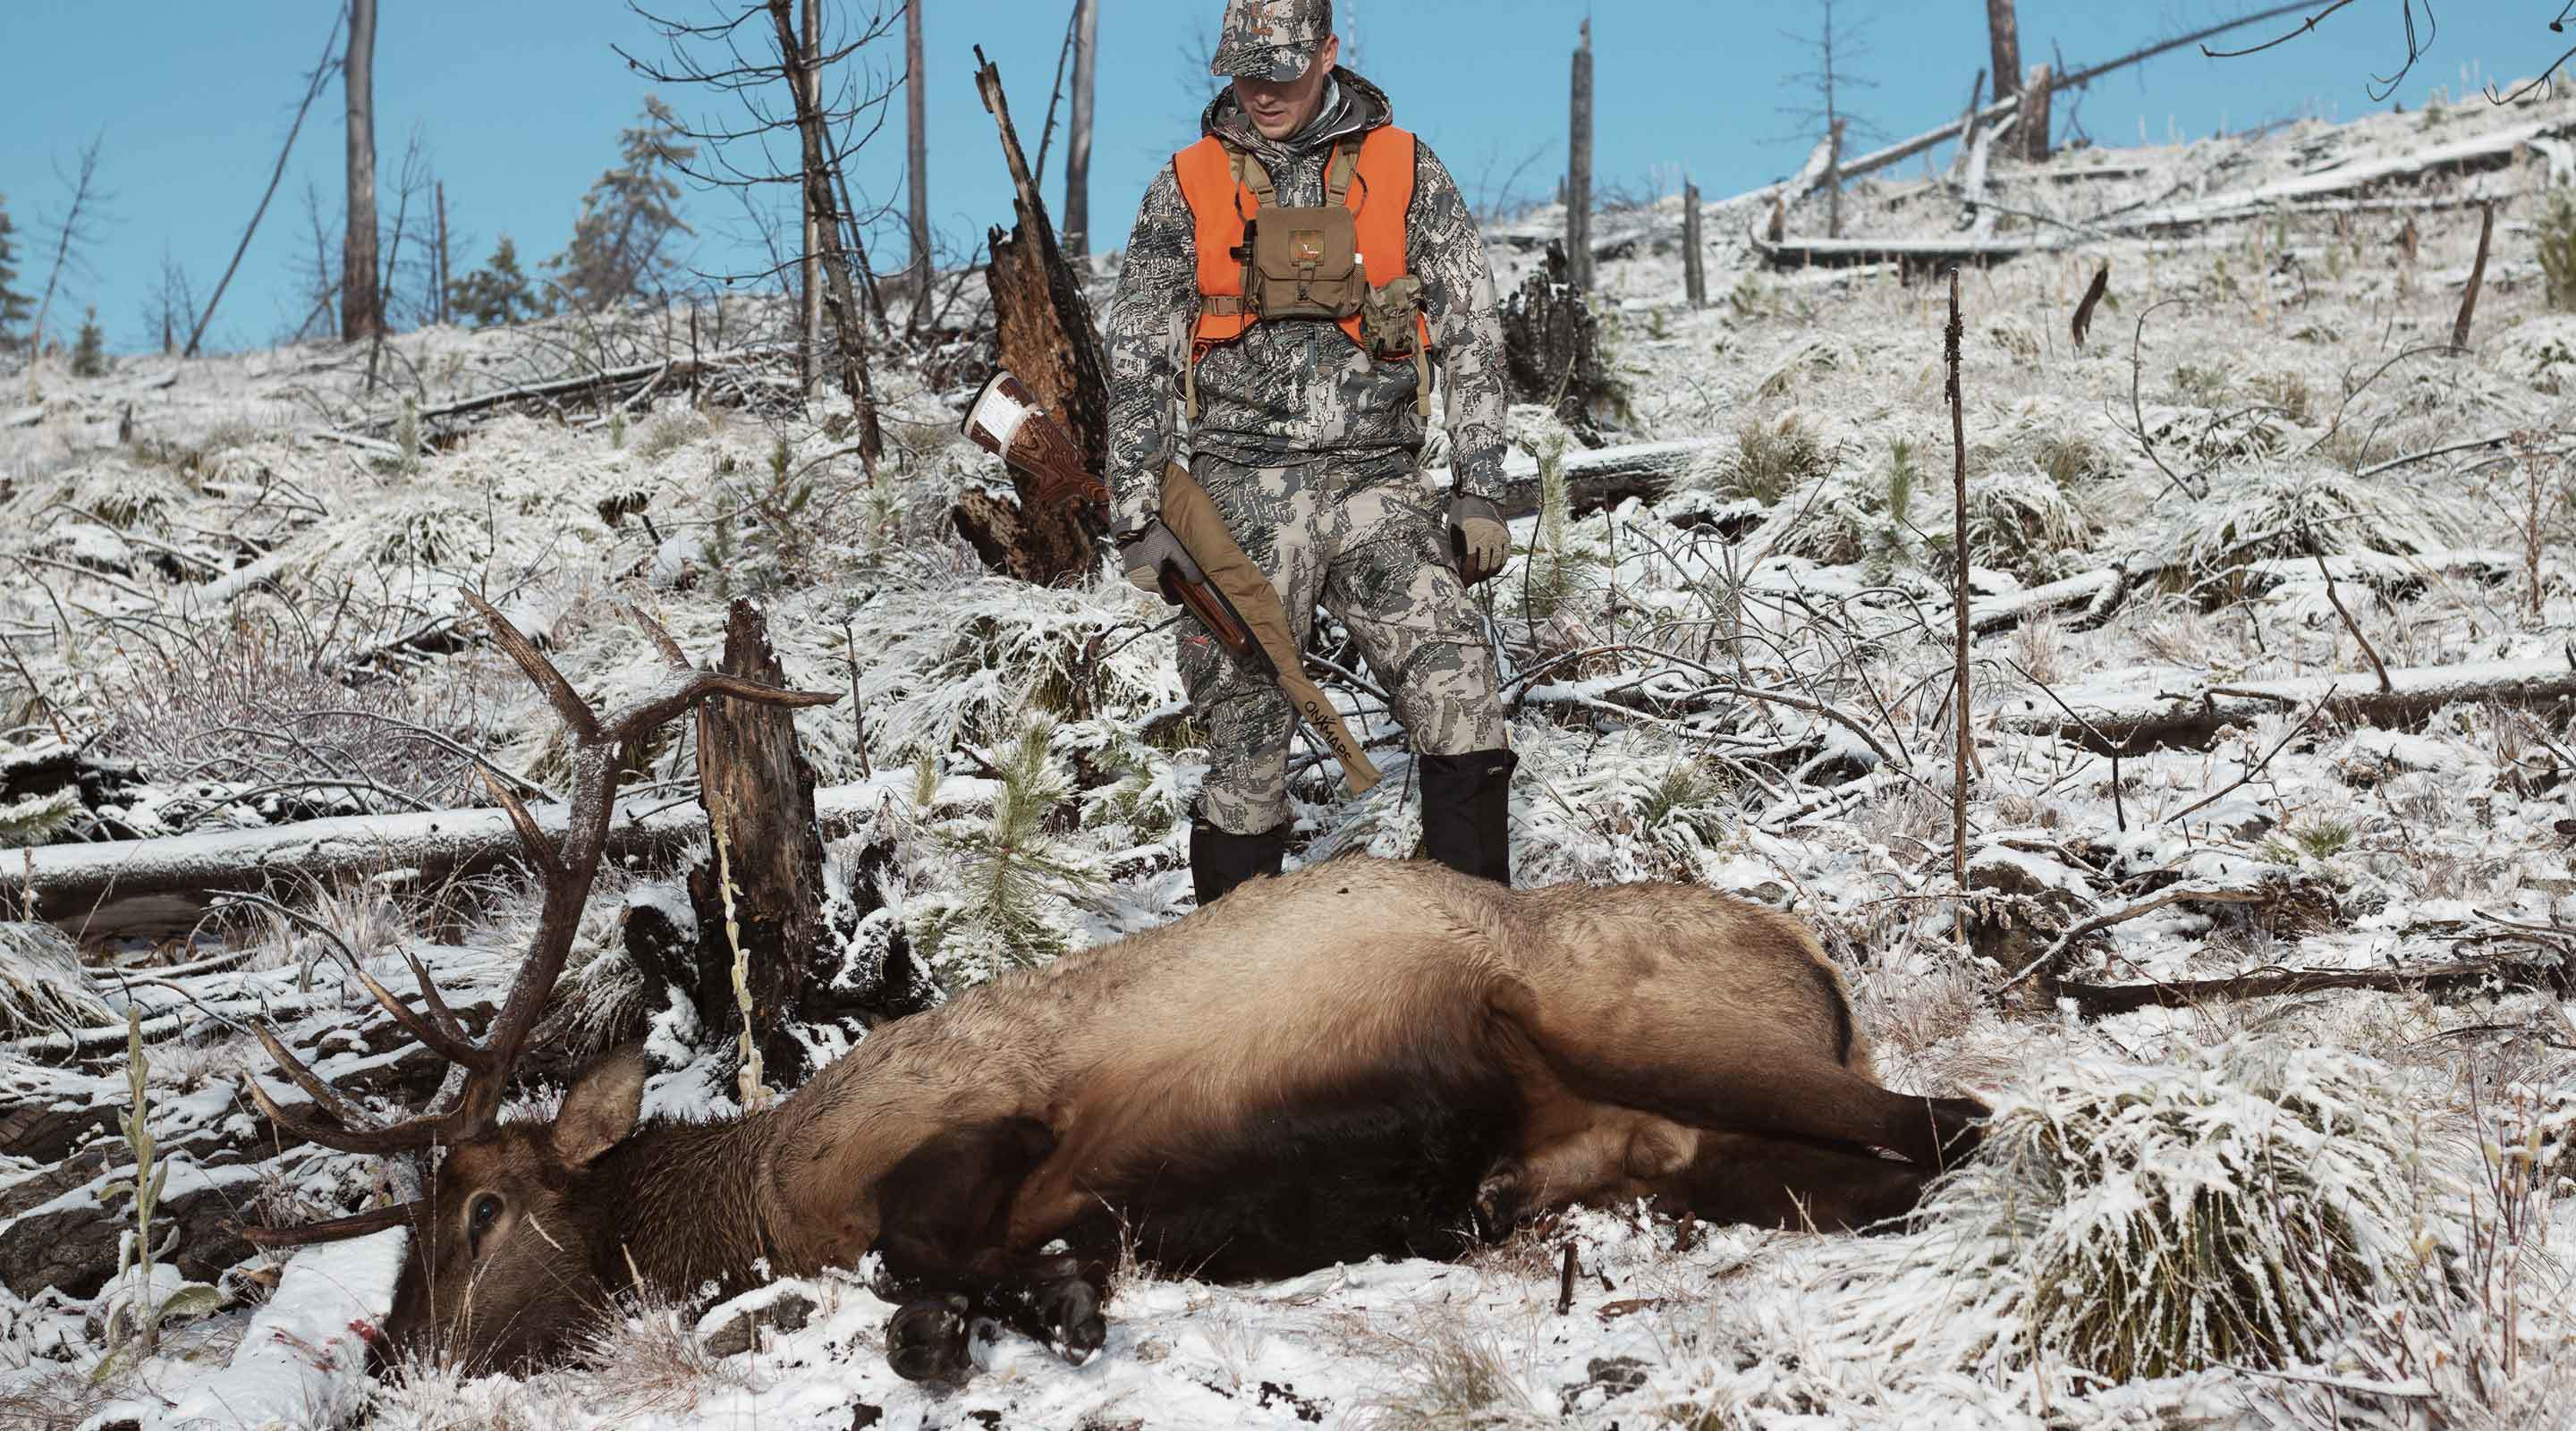 A late-season bull elk shot in the snow in Montana.